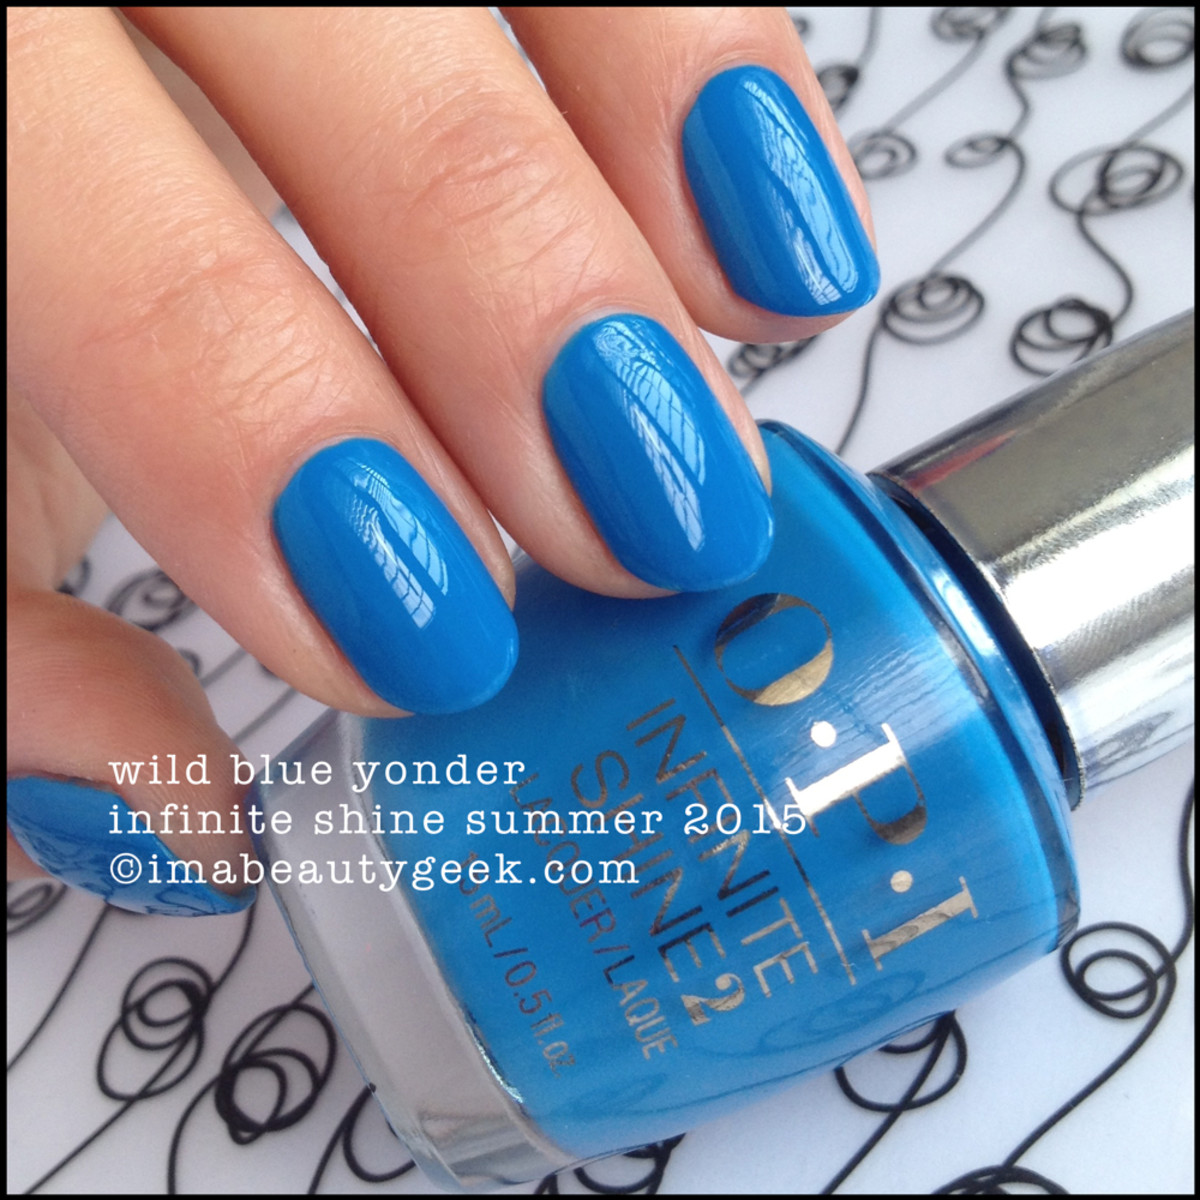 OPI Infinite Shine OPI Wild Blue Yonder Summer 2015